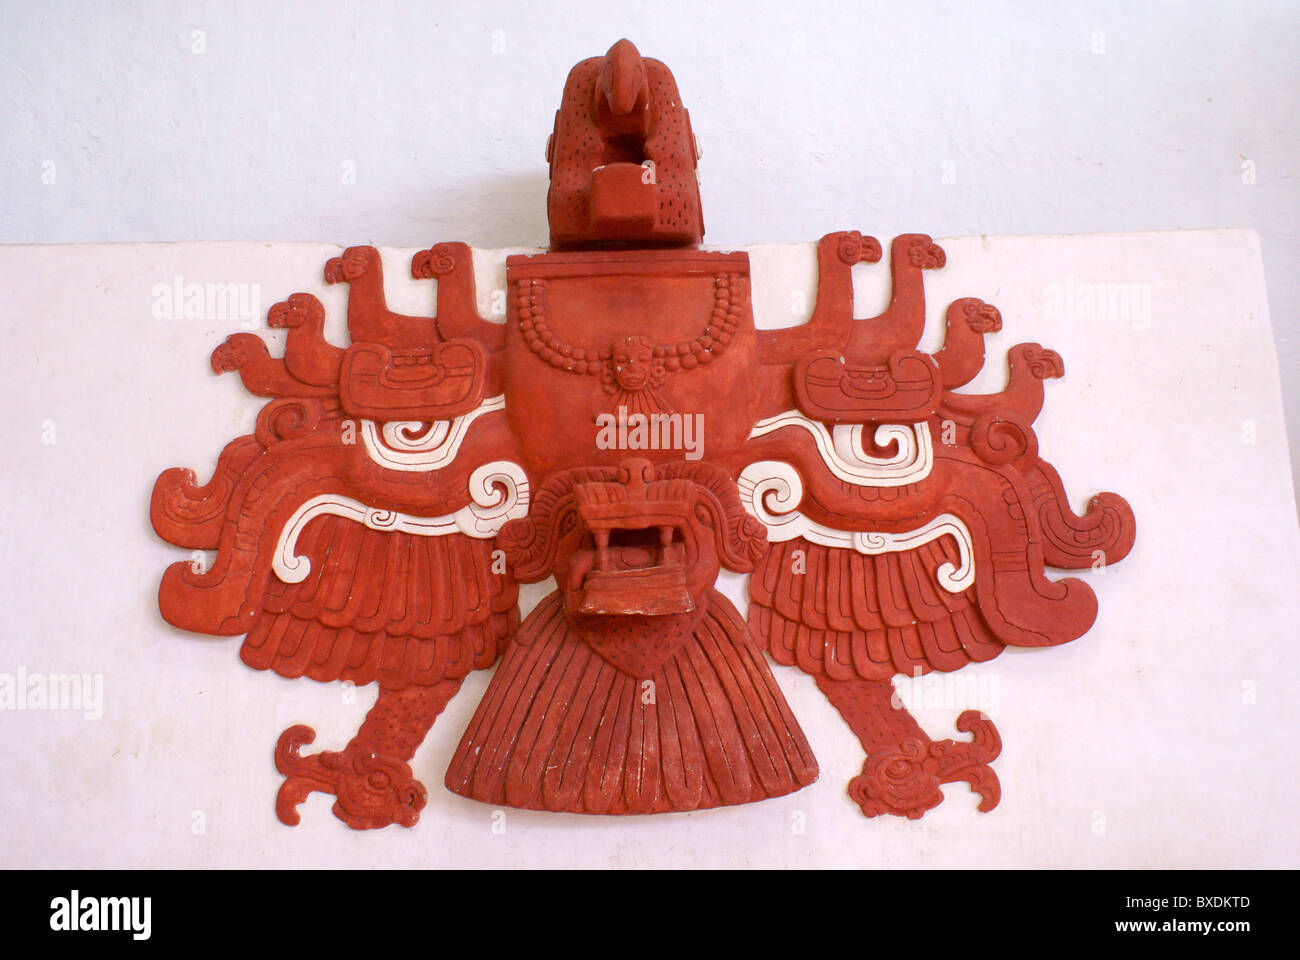 Replica of a red stucco macaw sculpture from Ballcourt I at the Mayan ruins of Copan, Copan Sculpture Museum Honduras - Stock Image